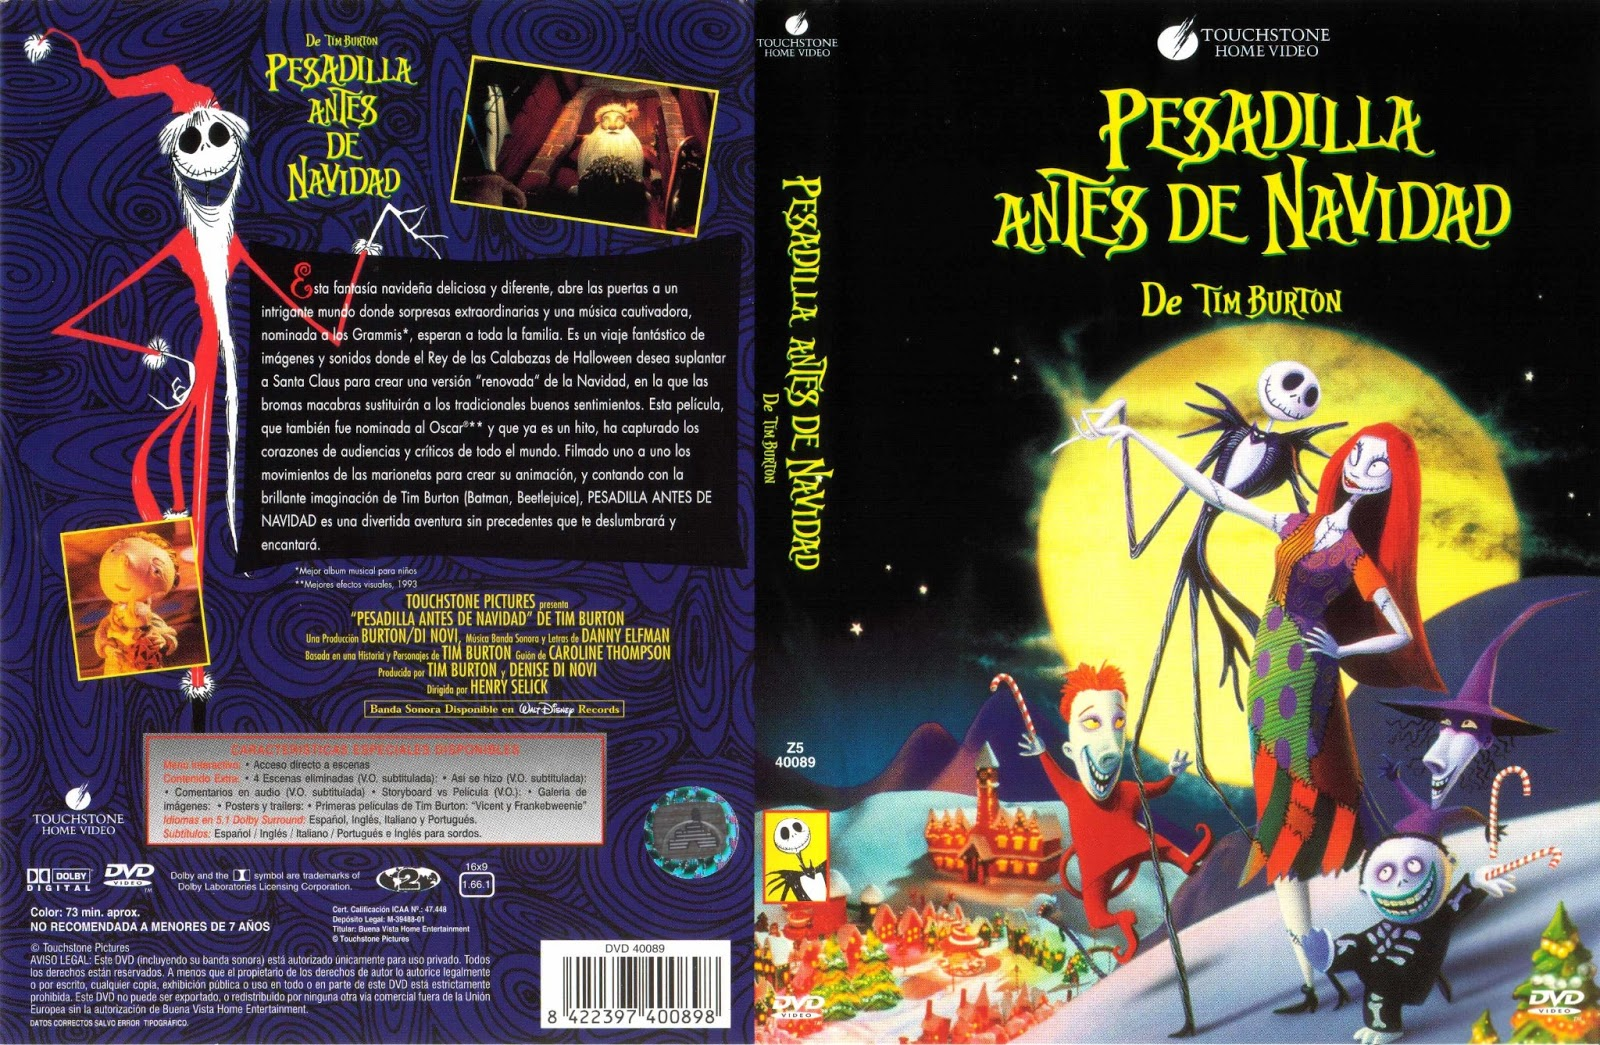 The Nightmare Before Christmas Vhs 2000 - Opening to the nightmare ...